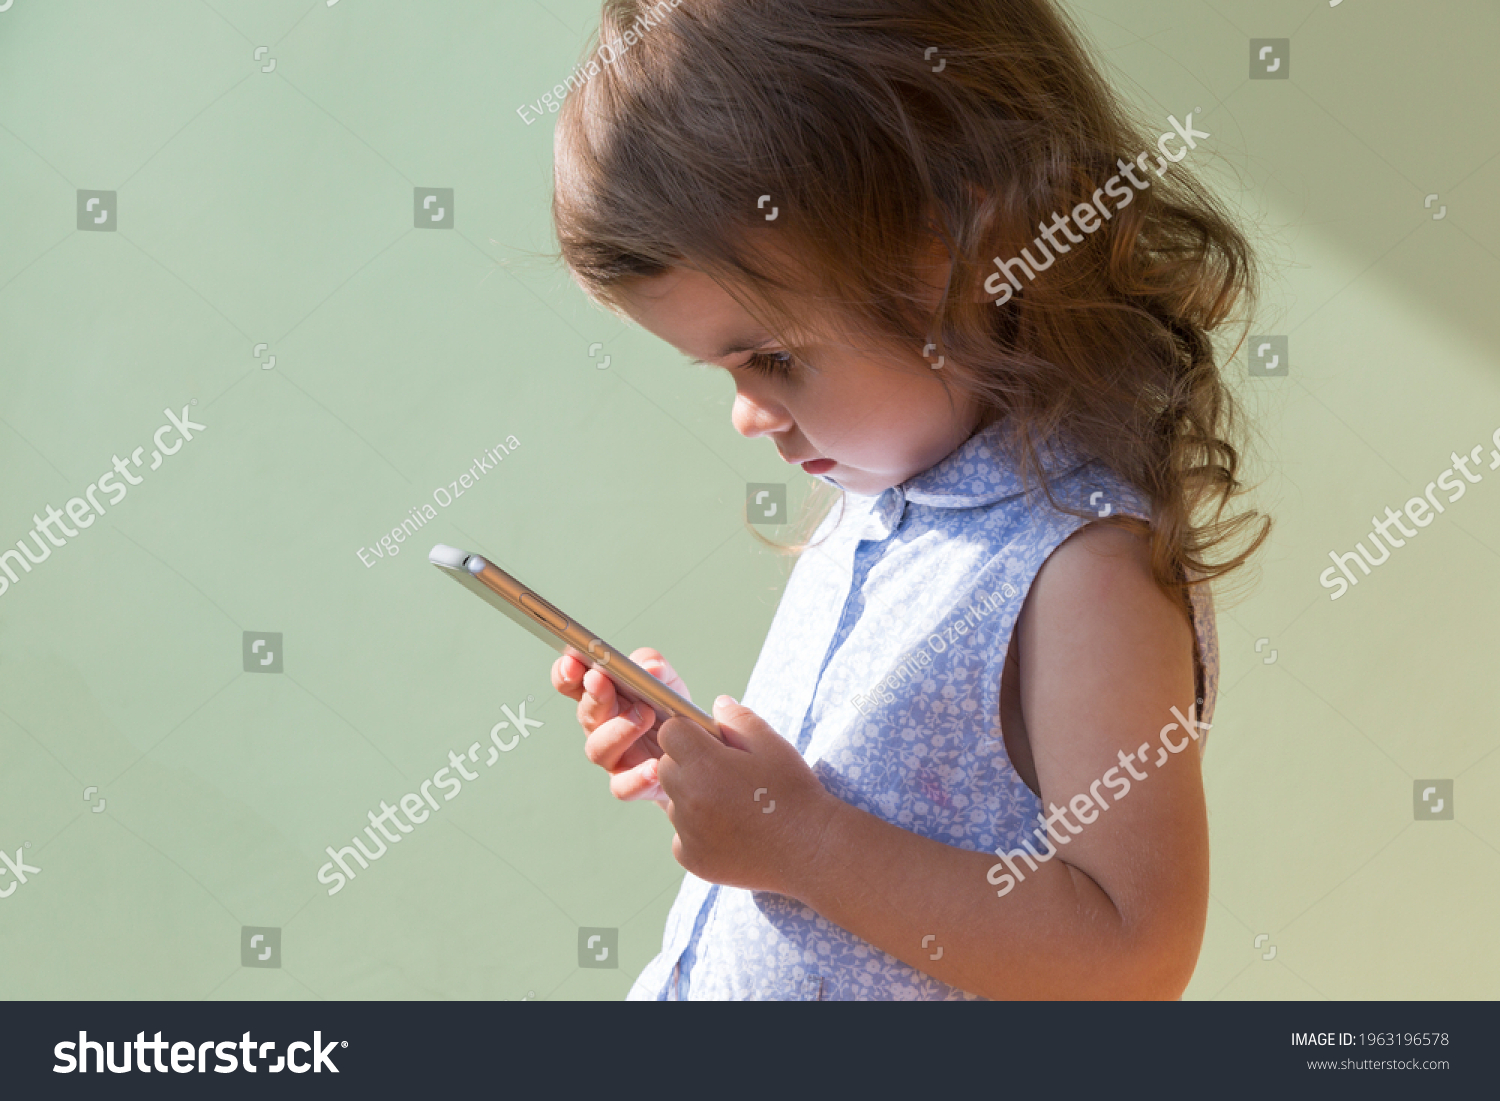 beautiful  toddler girl playing with smartphone. the girl is isolated on green wall. Technology and lifestyle concept